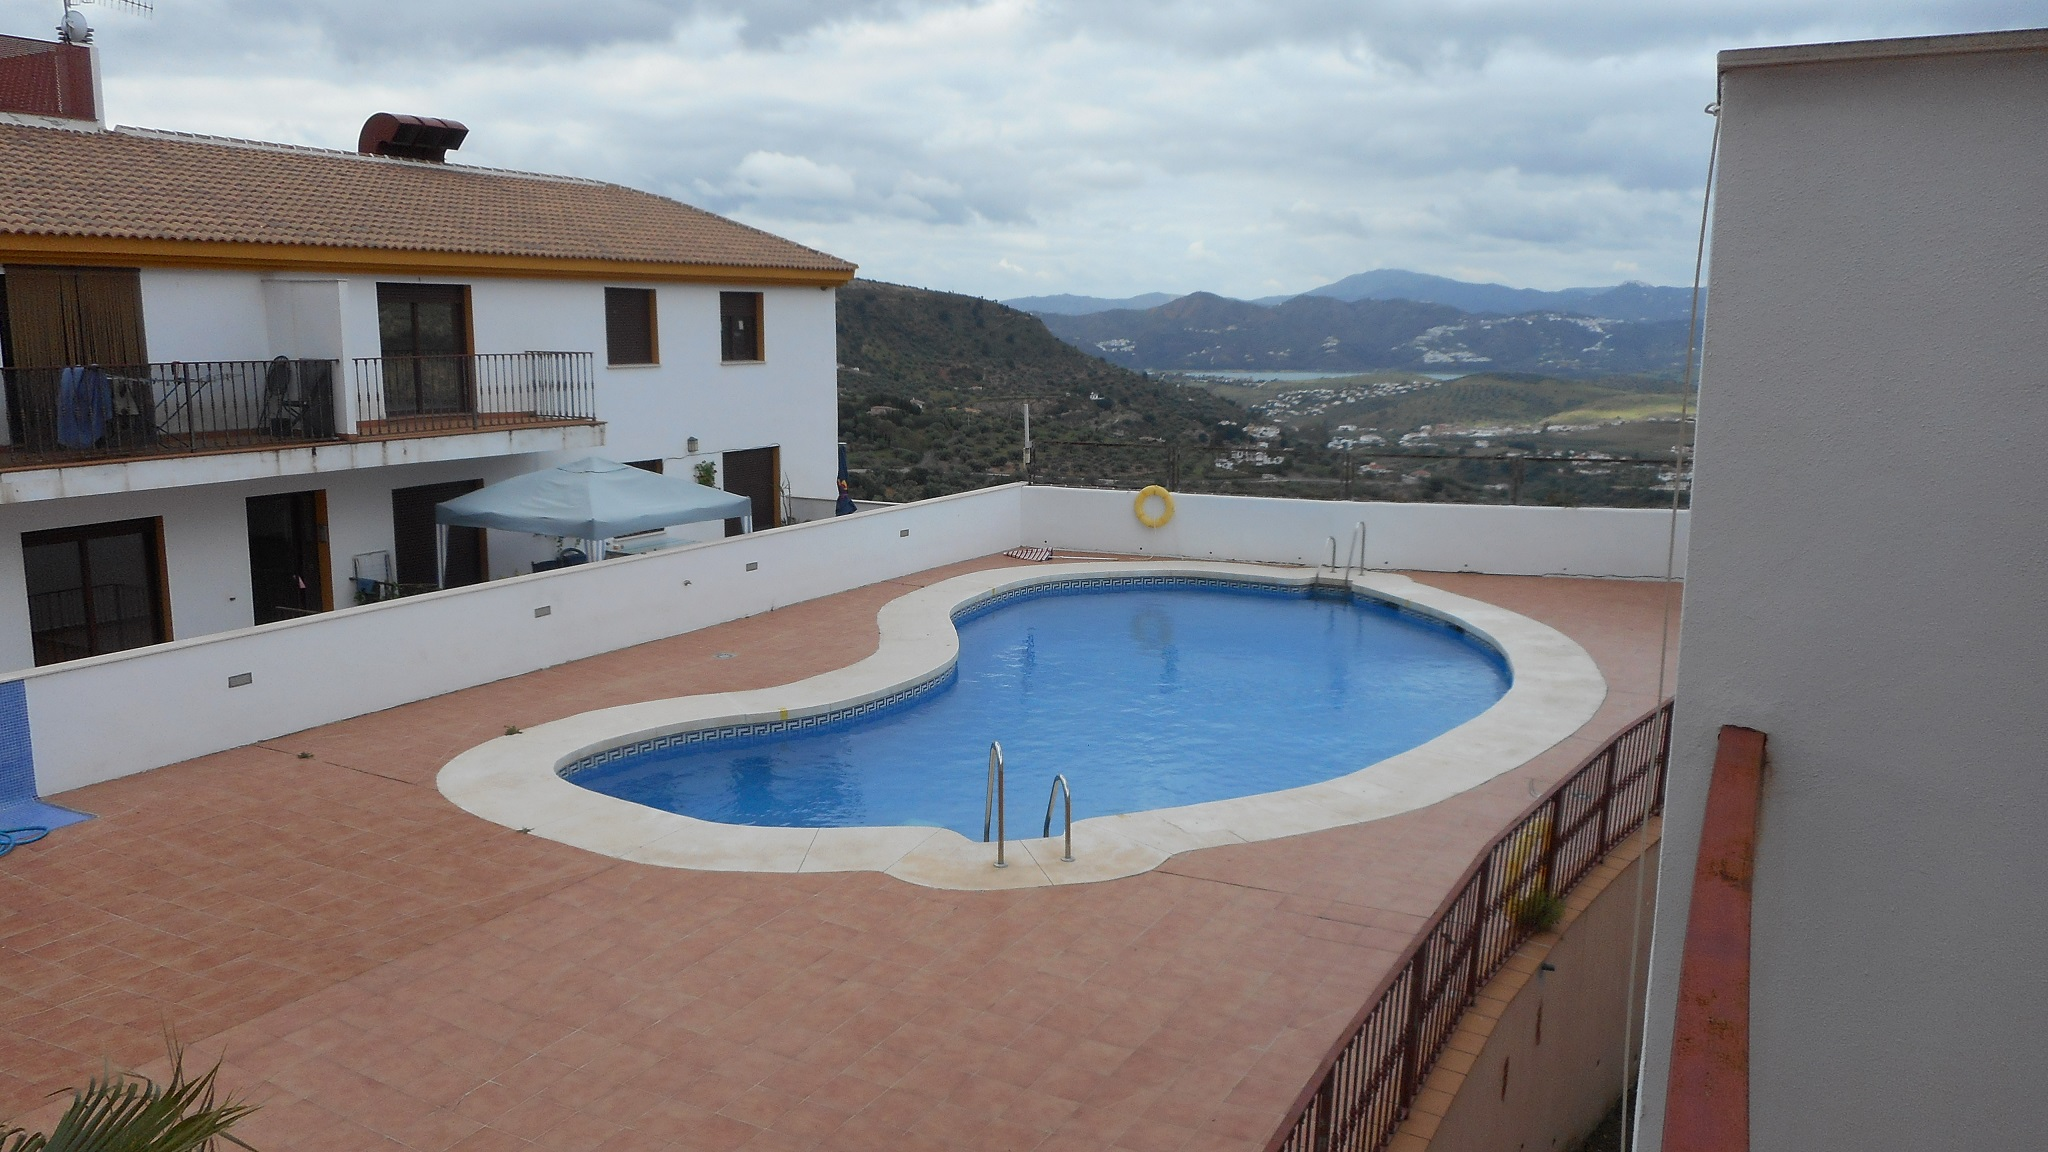 2 BEDROOM APARTMENT IN ALCAUCIN from £170/week  Up To 4 People